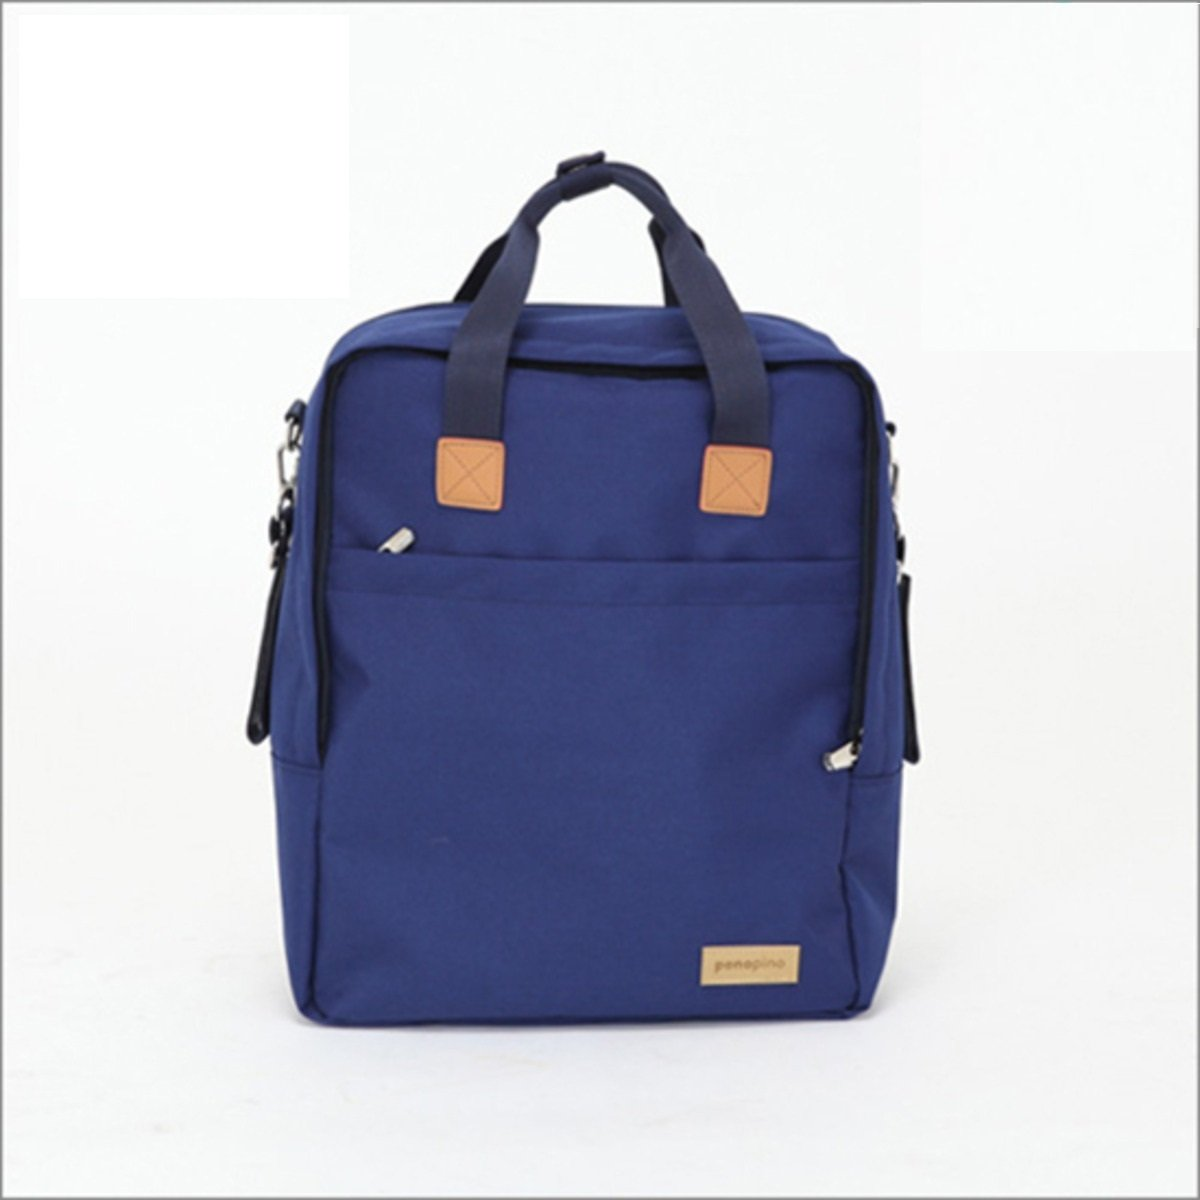 Ponopino The Classic backpack Navy blue_Classic2